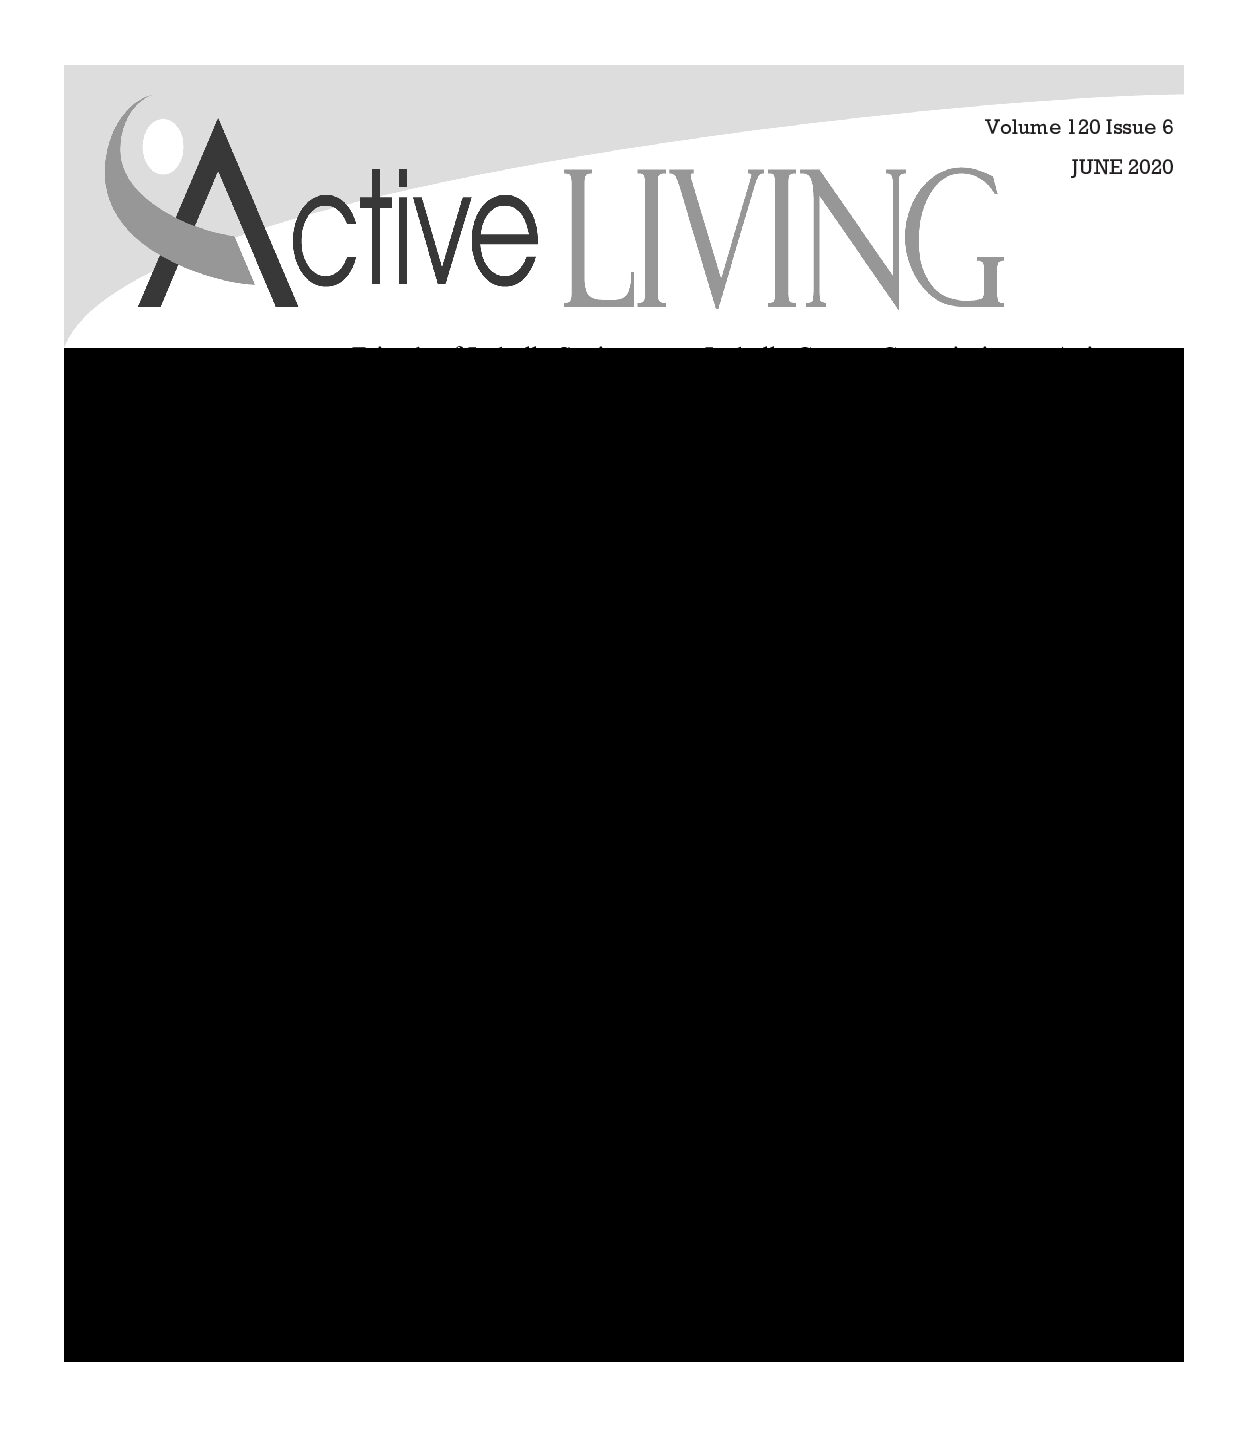 preview image of first page June Active Living